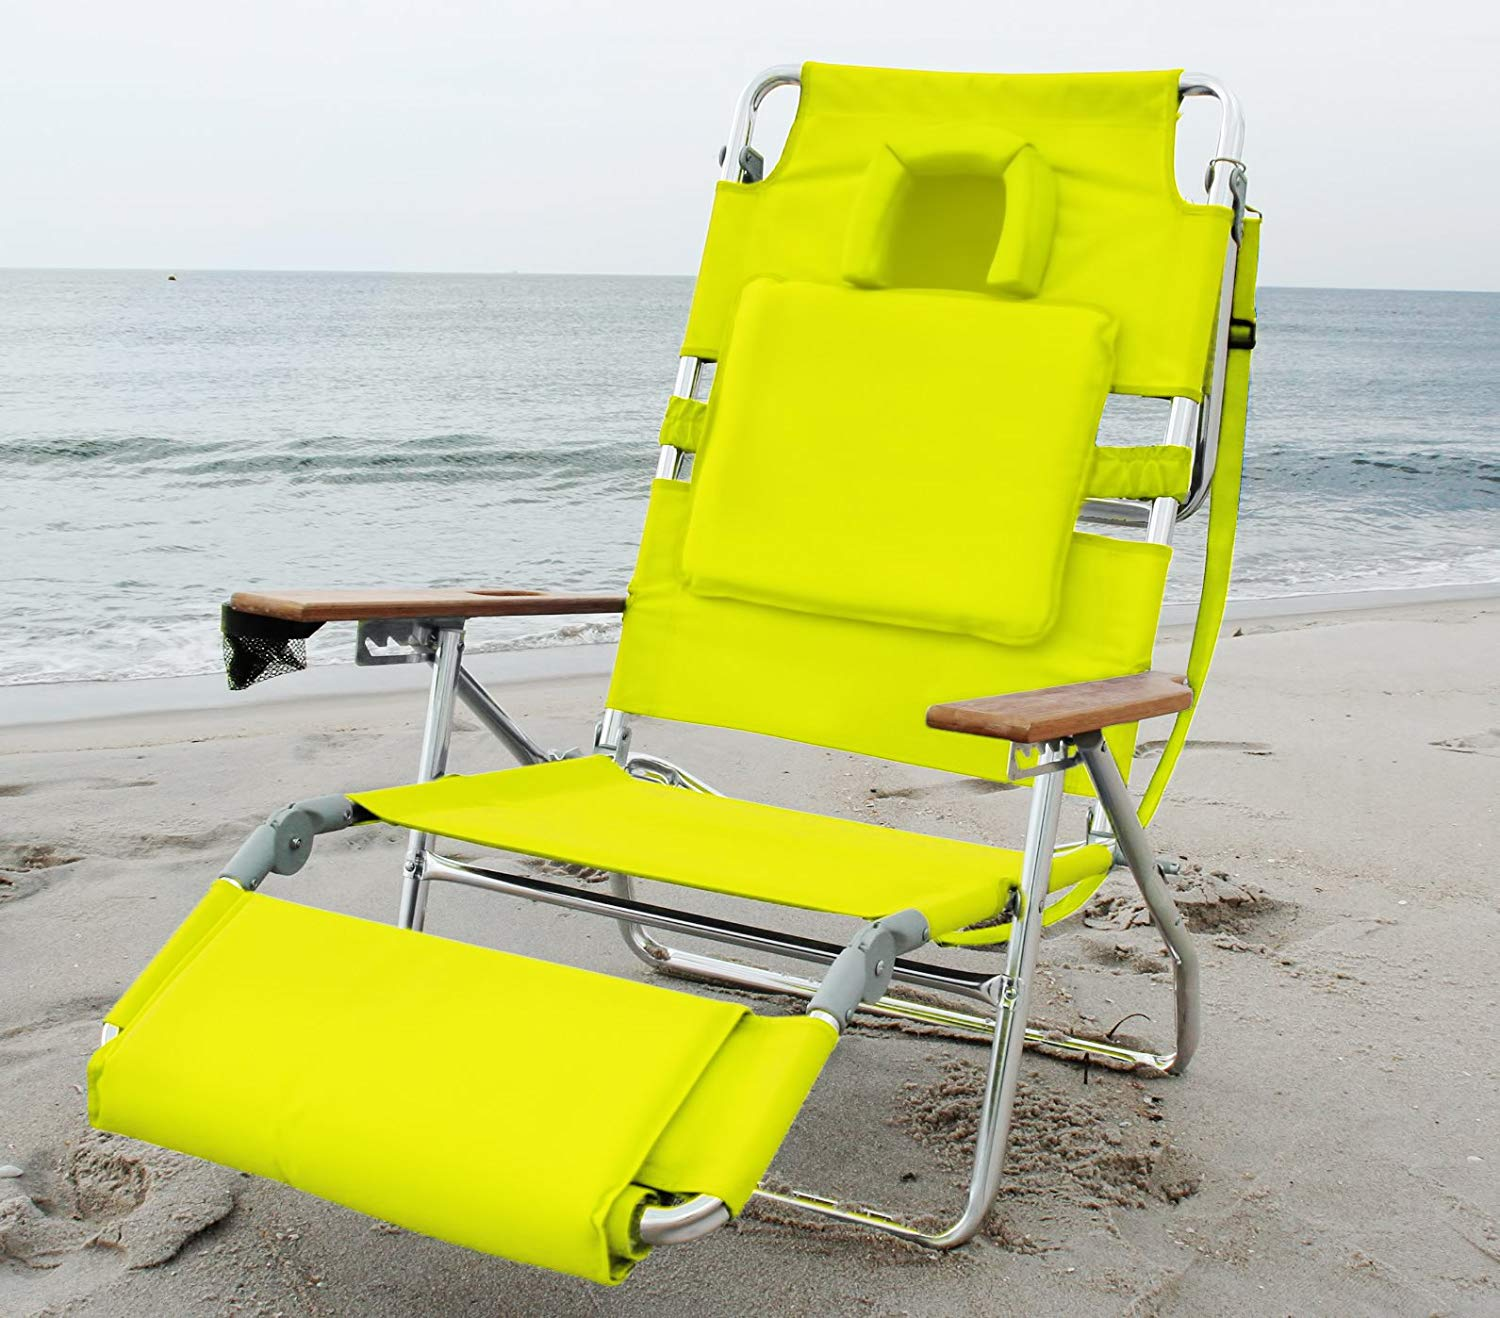 Everyone on the beach will be green with envy if you buy this from Amazon or eBay. Credit: Amazon